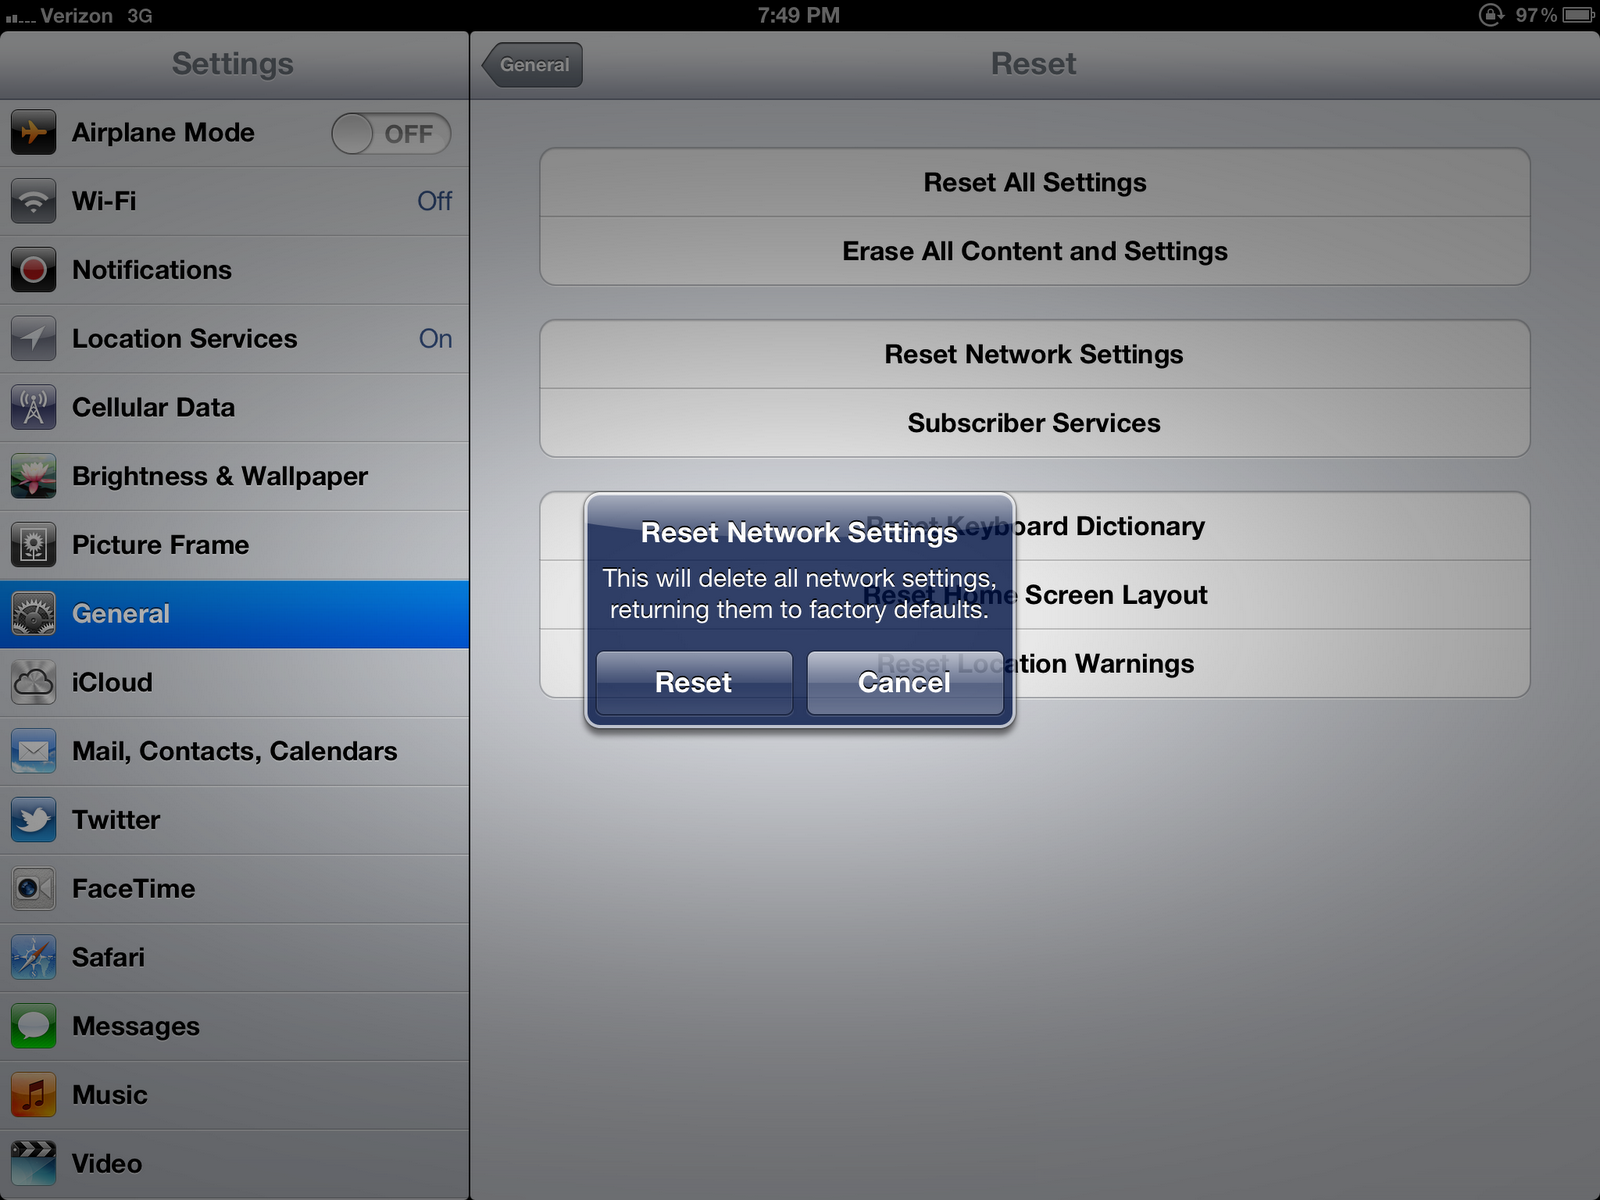 how to use the find command on ipad